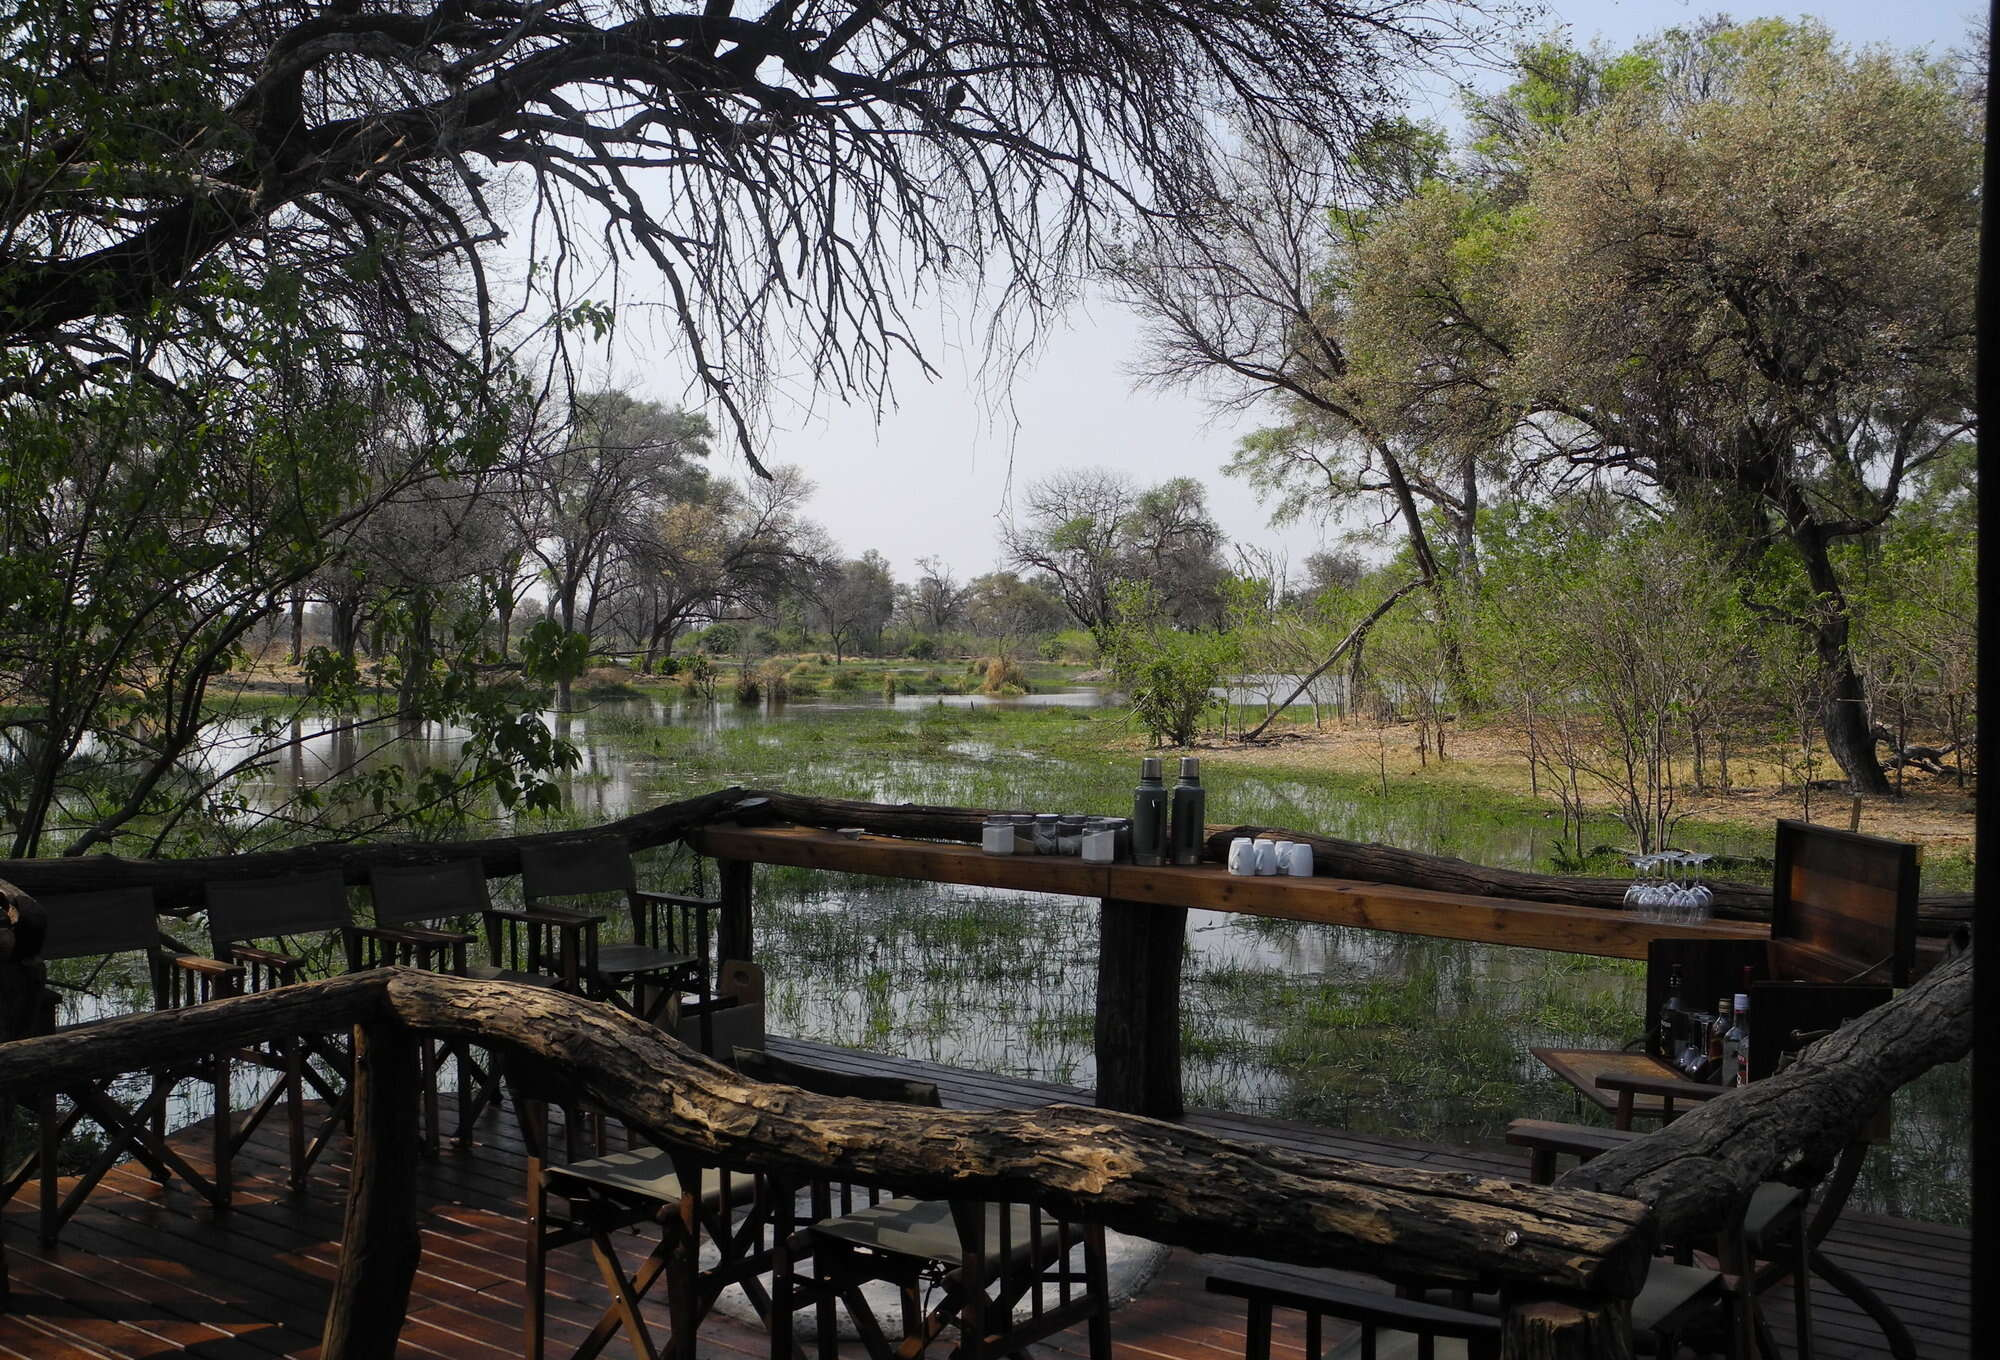 Good value Botswana safari – exploring the diverse Khwai area and wildlife rich northern Moremi from Khwai Tented Camp, and the Linyanti Reserve from Saile Tented Camp.